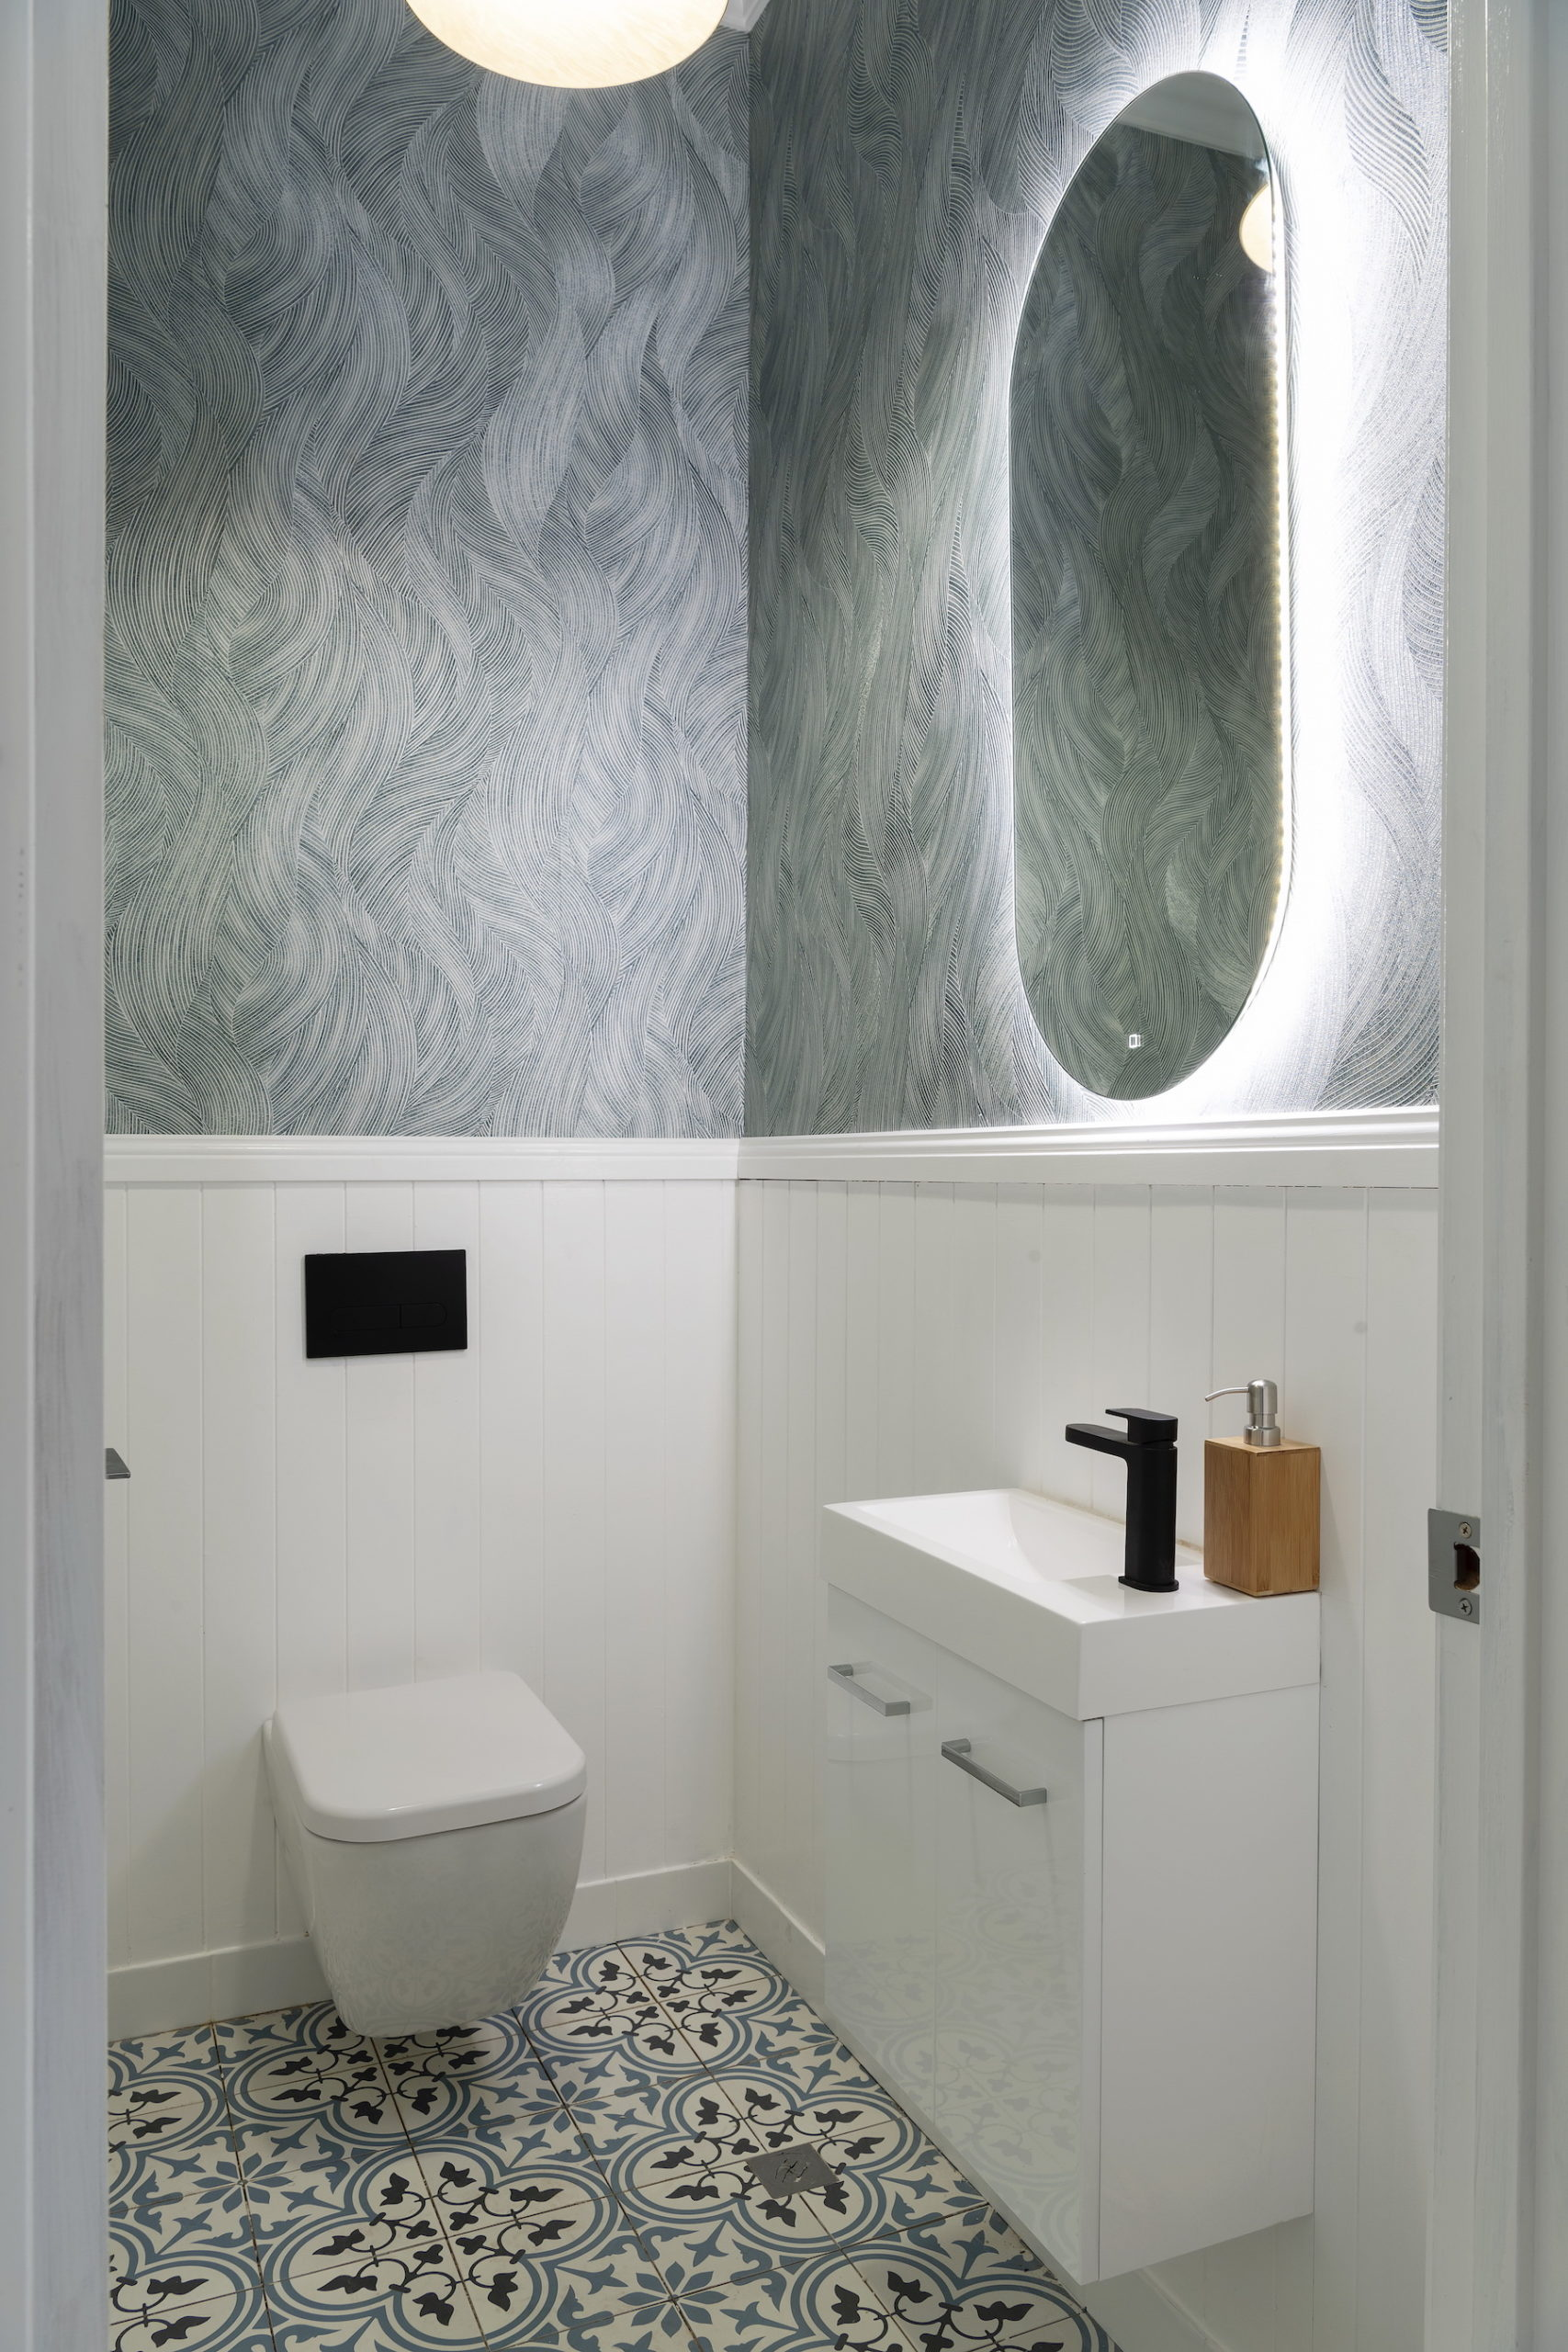 house rules 2020 tanya and dave reveal powder room with mosaic floor tiles and blue wallpaper